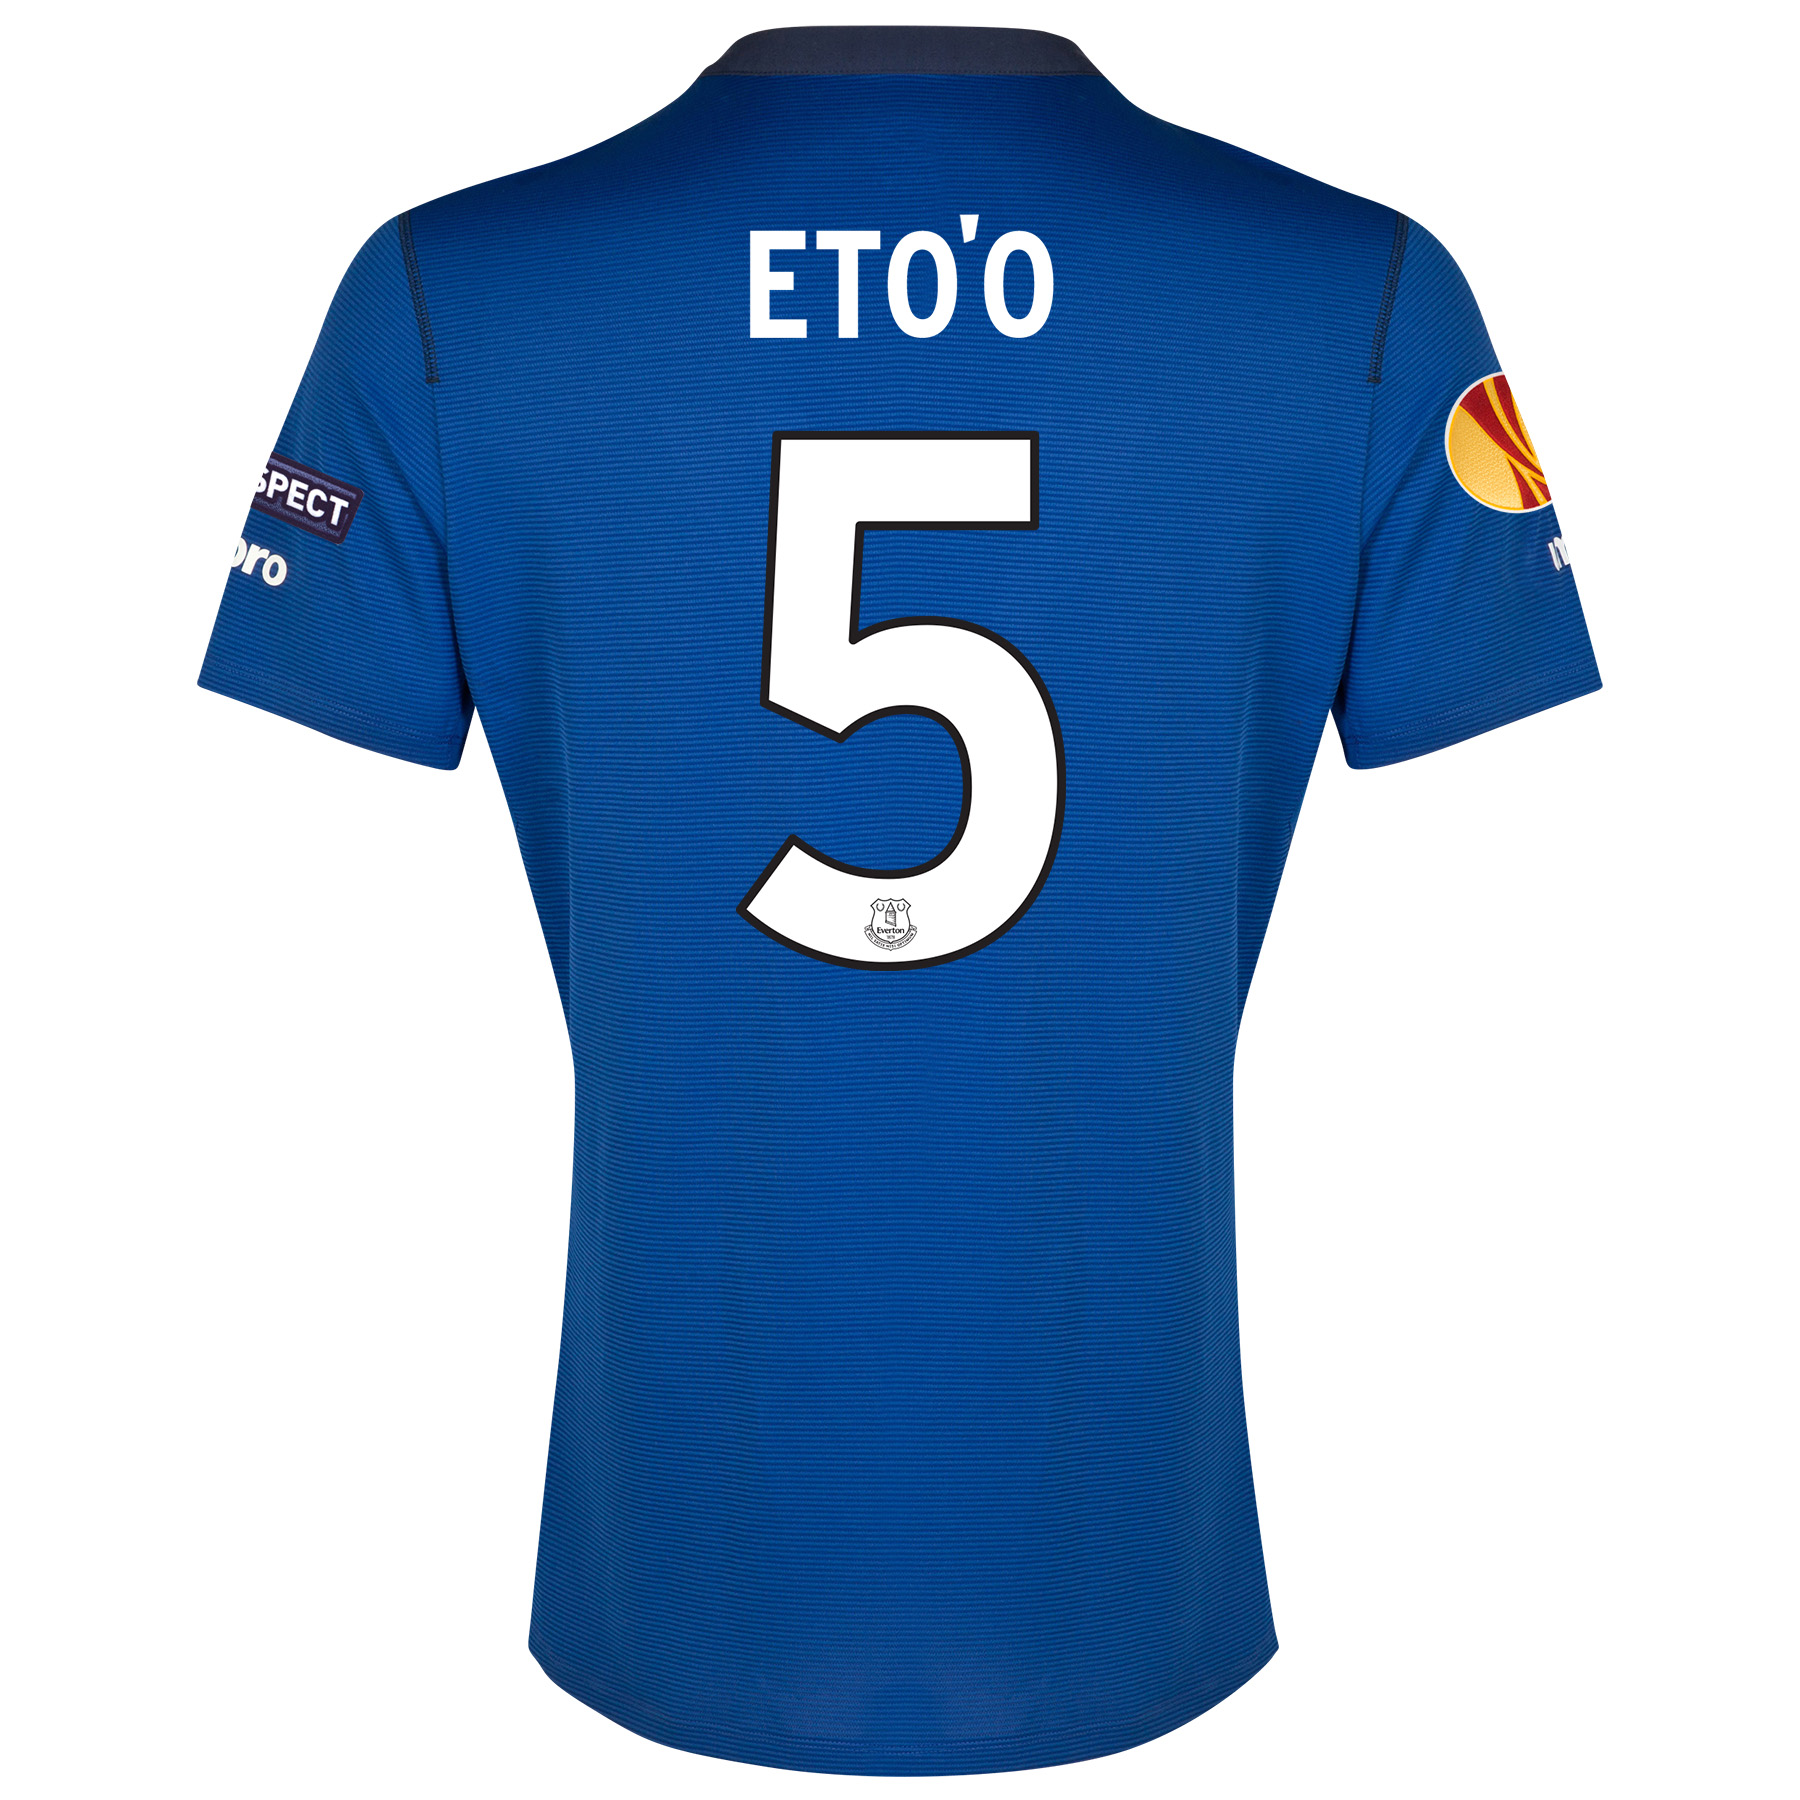 Everton UEFA Europa League SS Home Shirt 2014/15 with Eto'o 5 printing